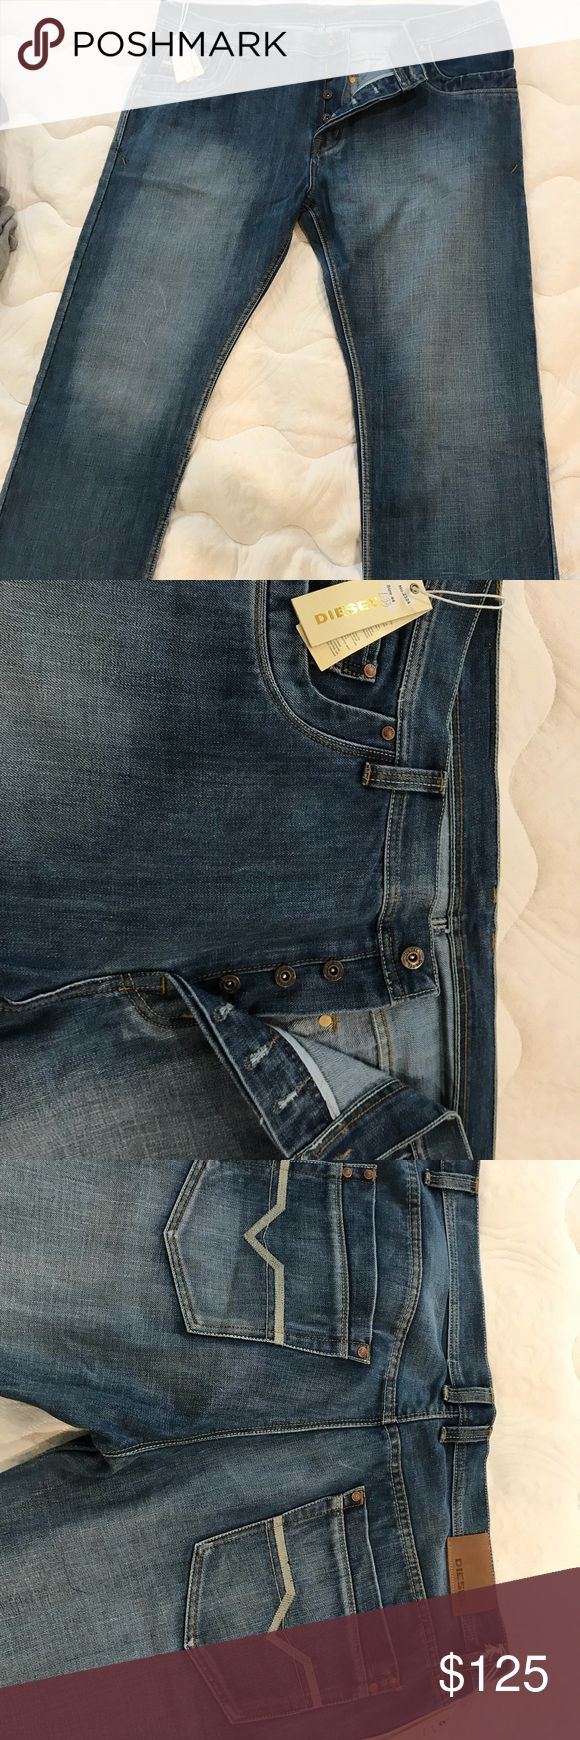 Jeans Only one brand new with tags Diesel brand jeans for men. Diesel Jeans Relaxed